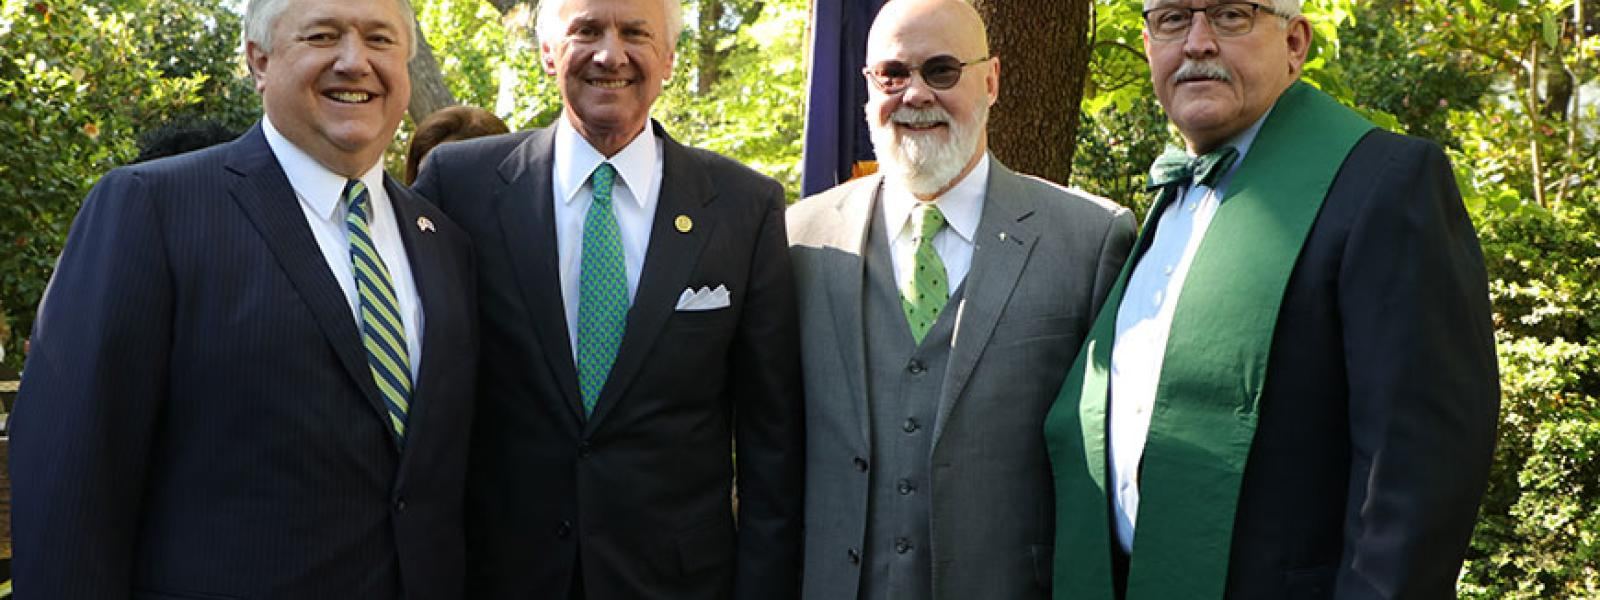 Earth Day at the Governor's Mansion: CIU President Dr. Mark Smith, Gov. Henry McMaster, CIU doctoral student Tom Mullikin, CIU Chaplaincy Professor Dr. Mike Langston